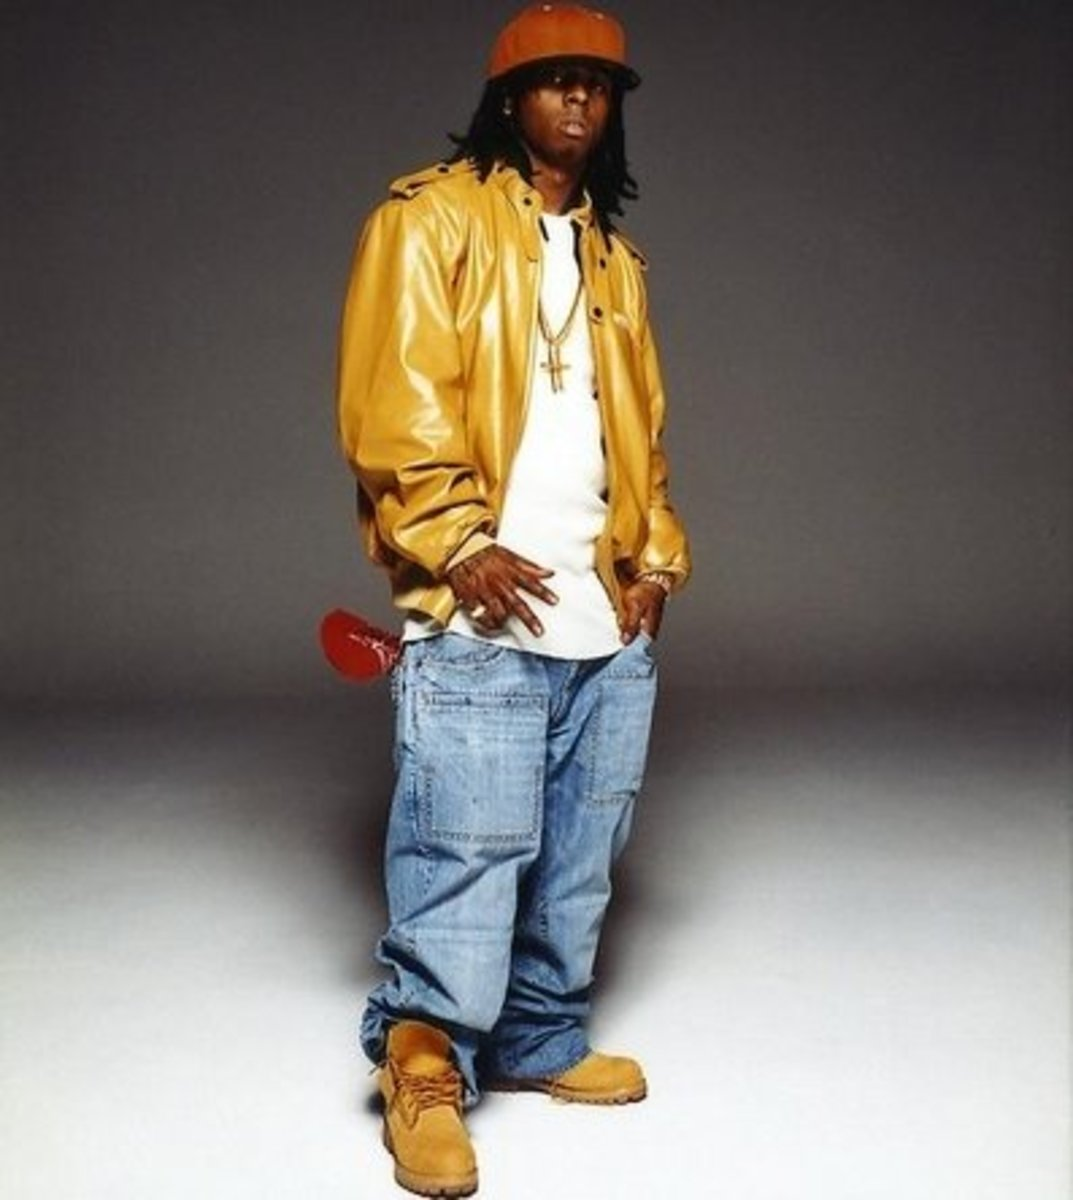 Lil Wayne In His Younger Days